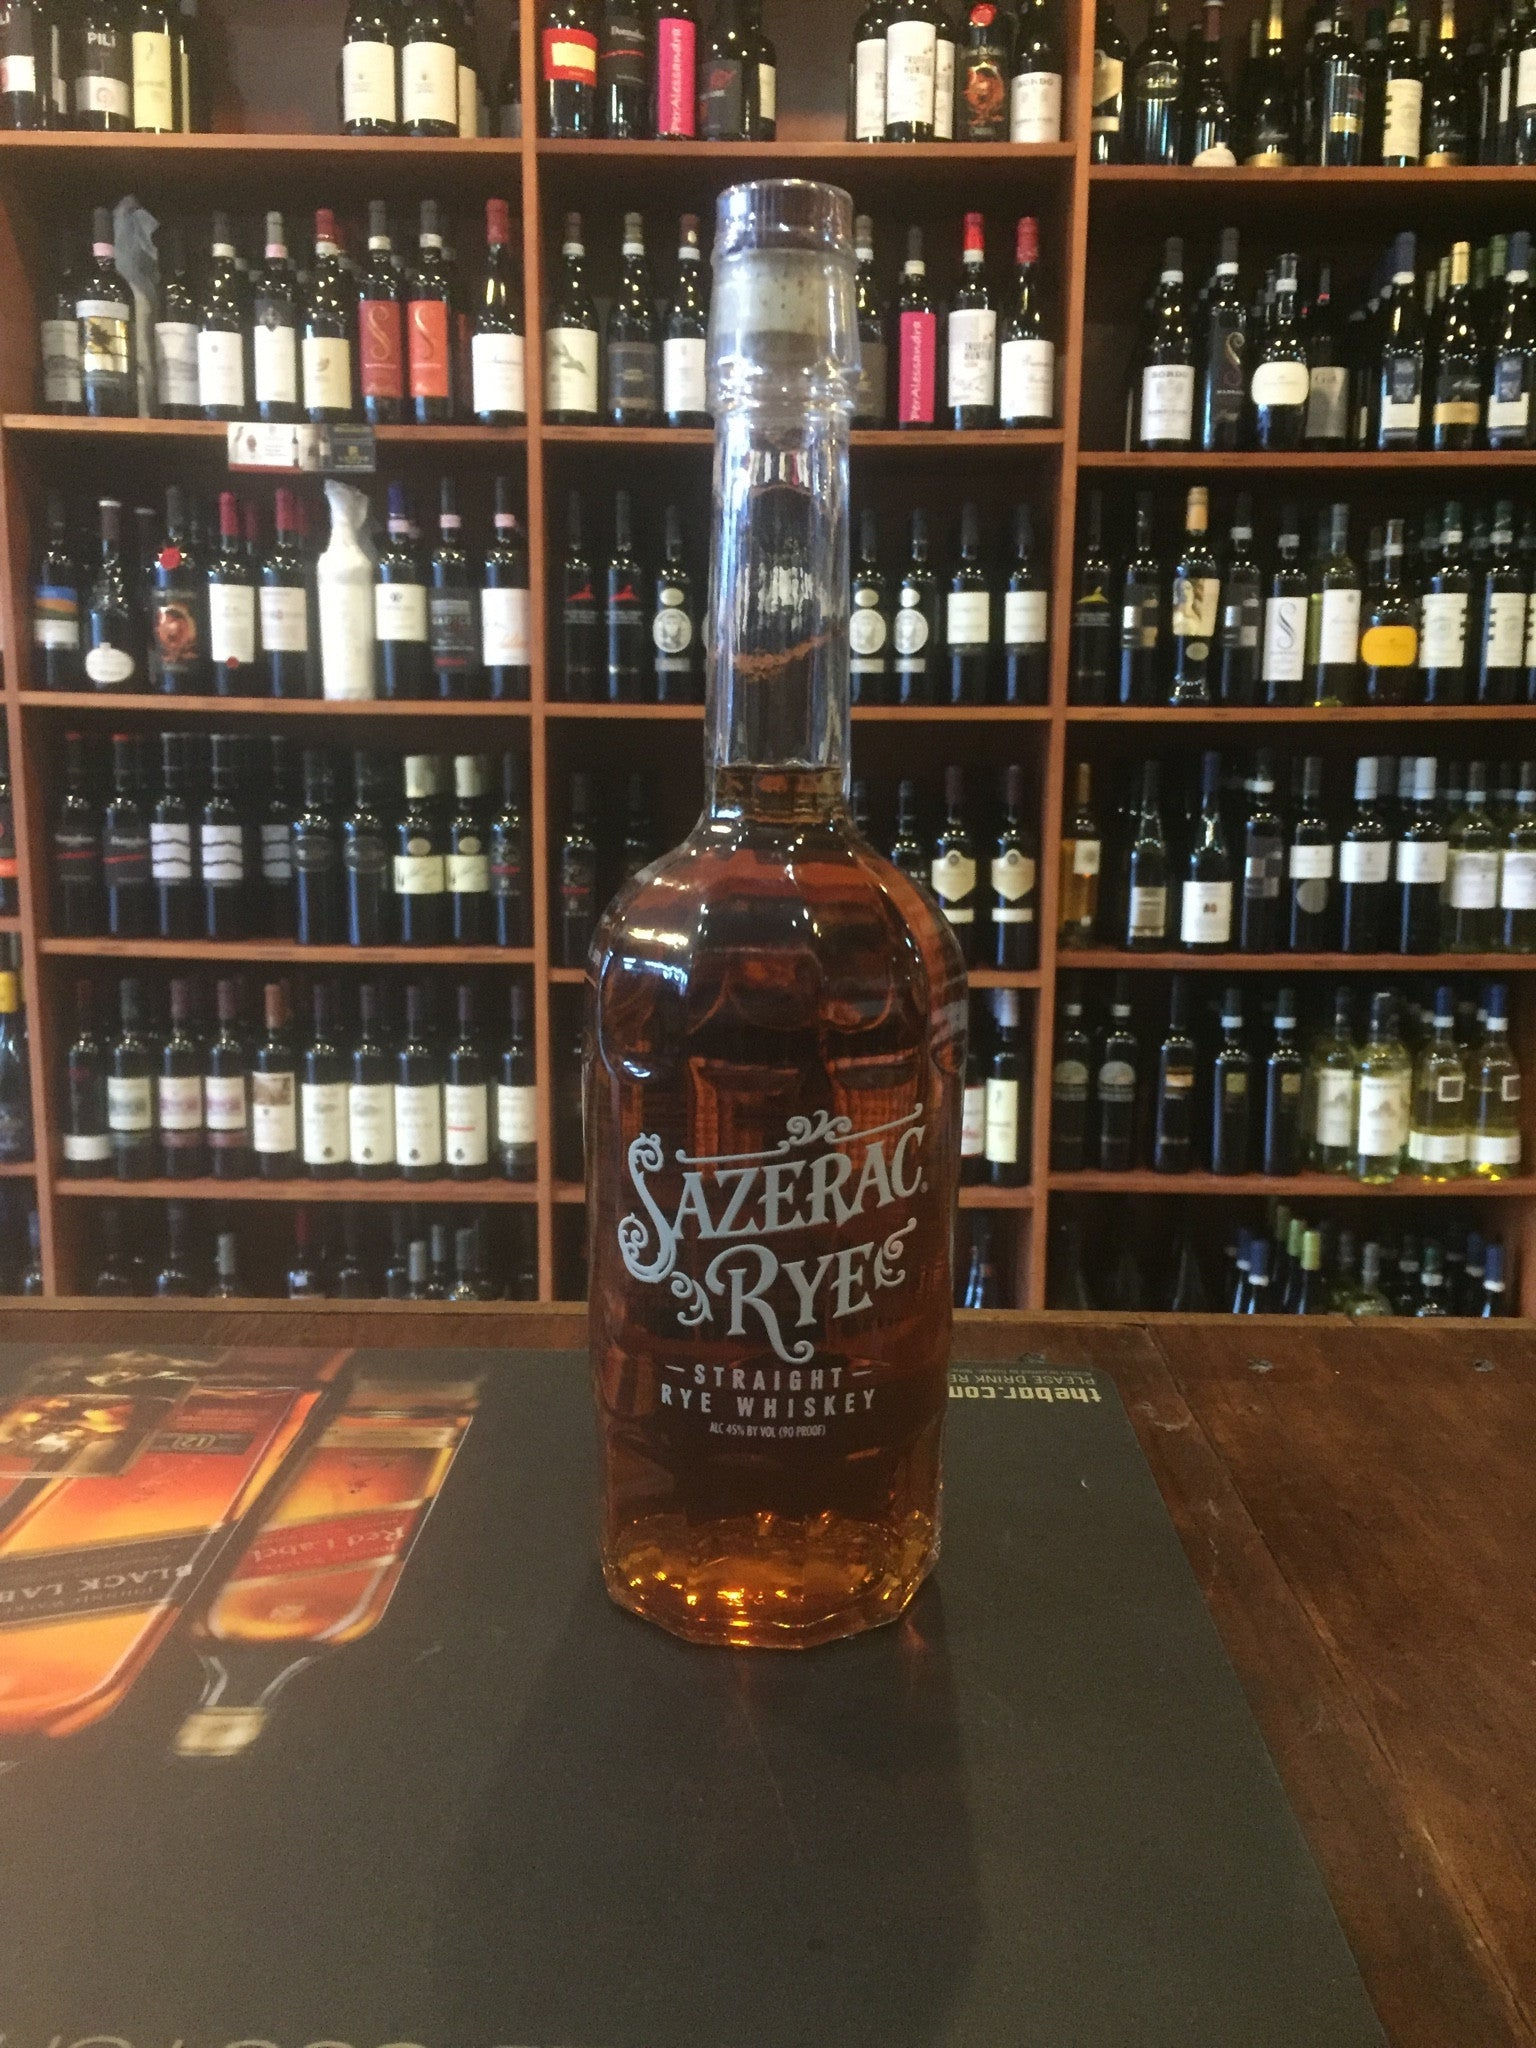 Sazerac Straight Rye Whiskey 750ml